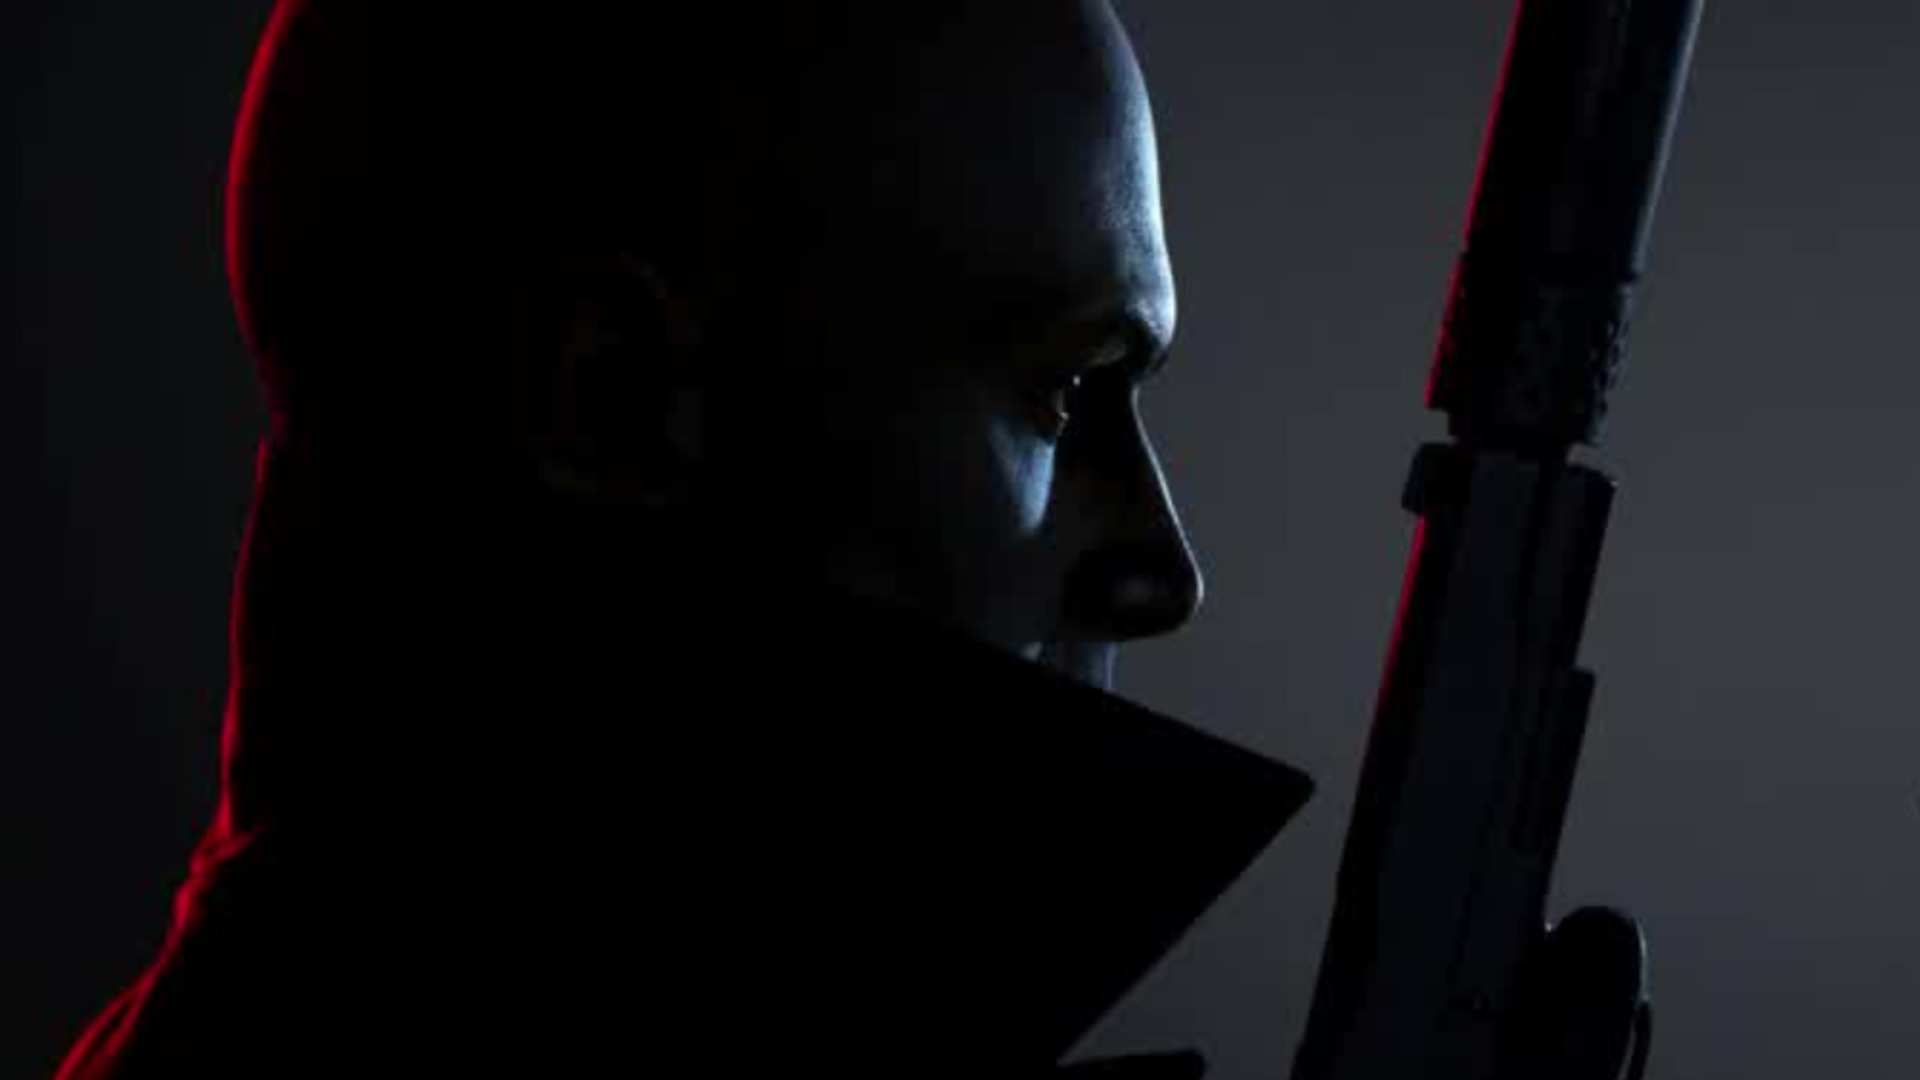 Hitman 3 on Switch features the entire World of Assassination trilogy